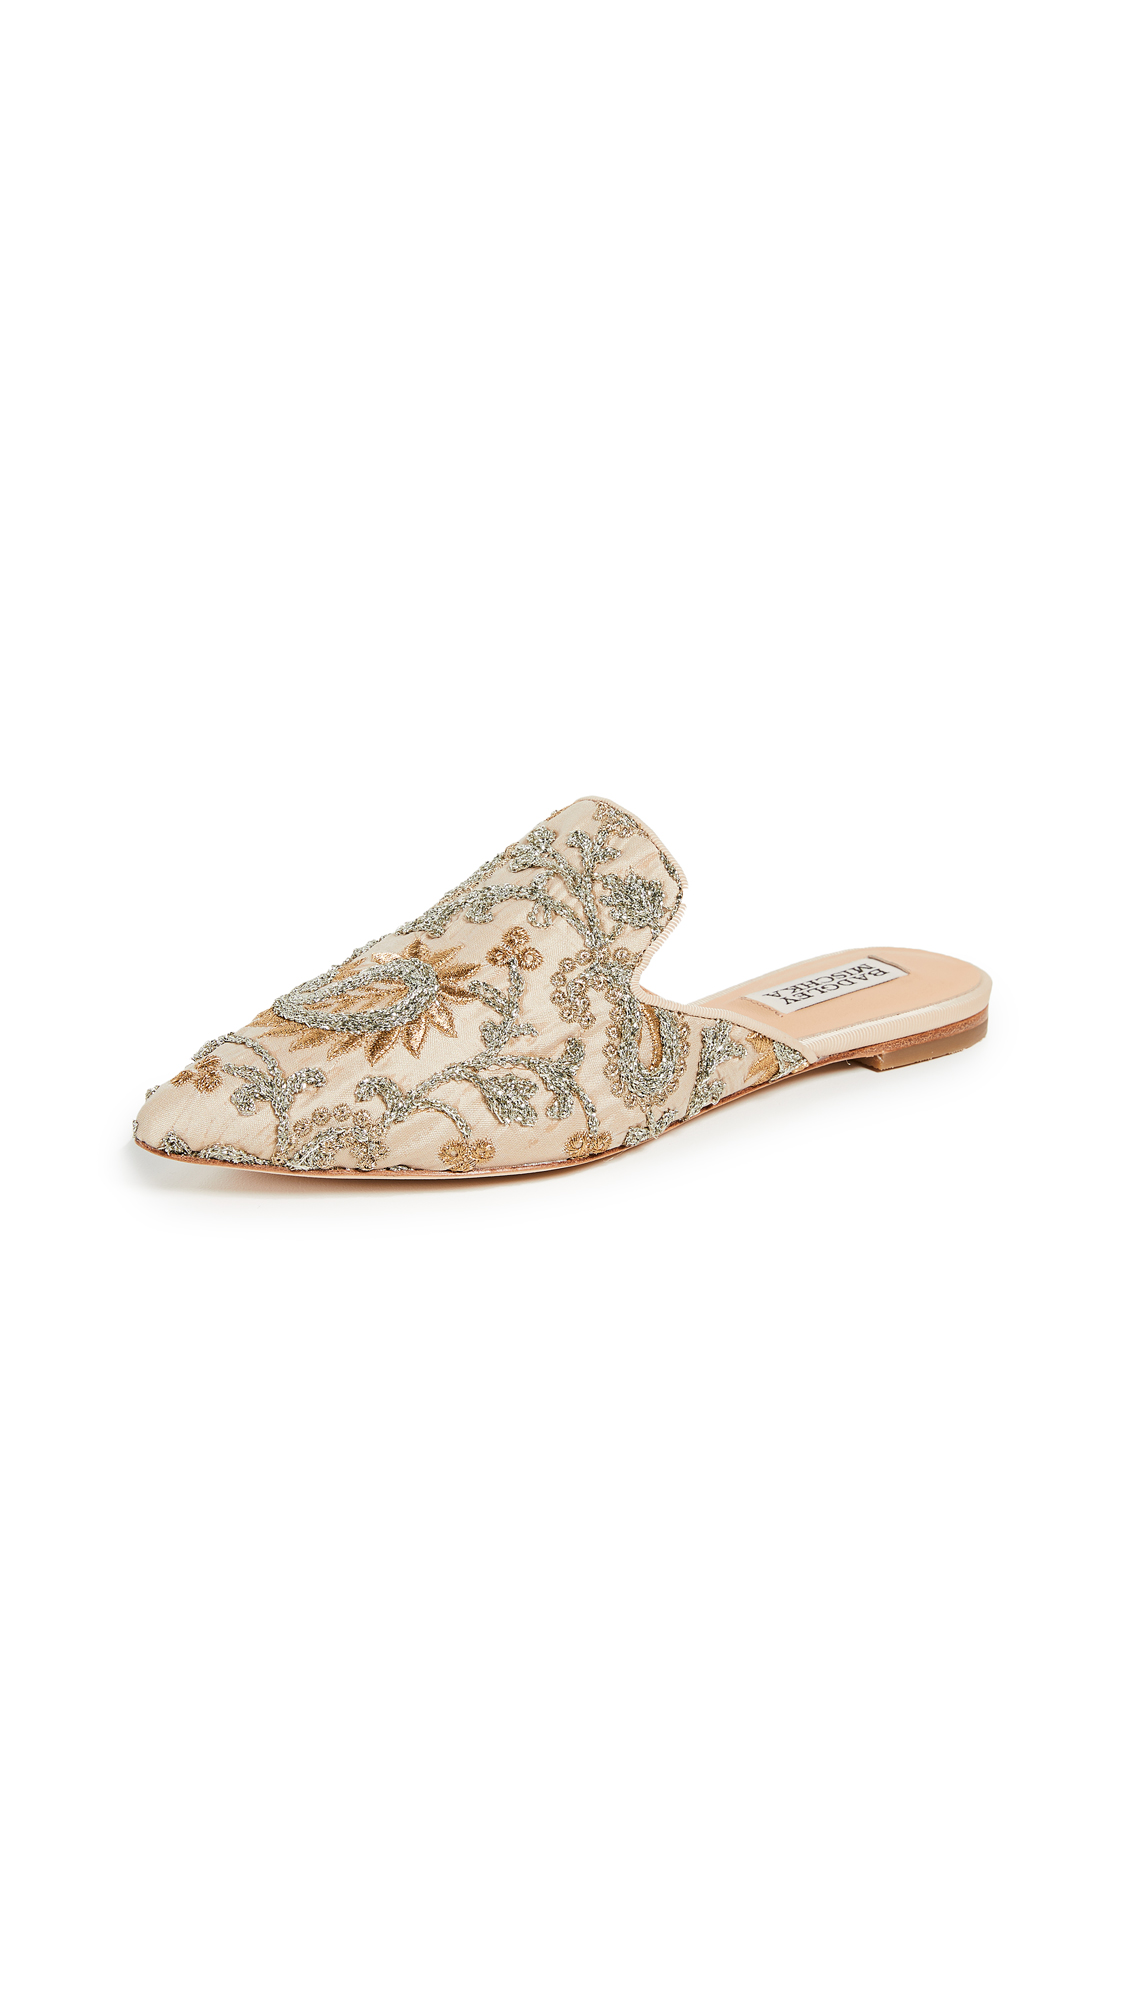 Badgley Mischka Phoebe Point Toe Mules - Platino